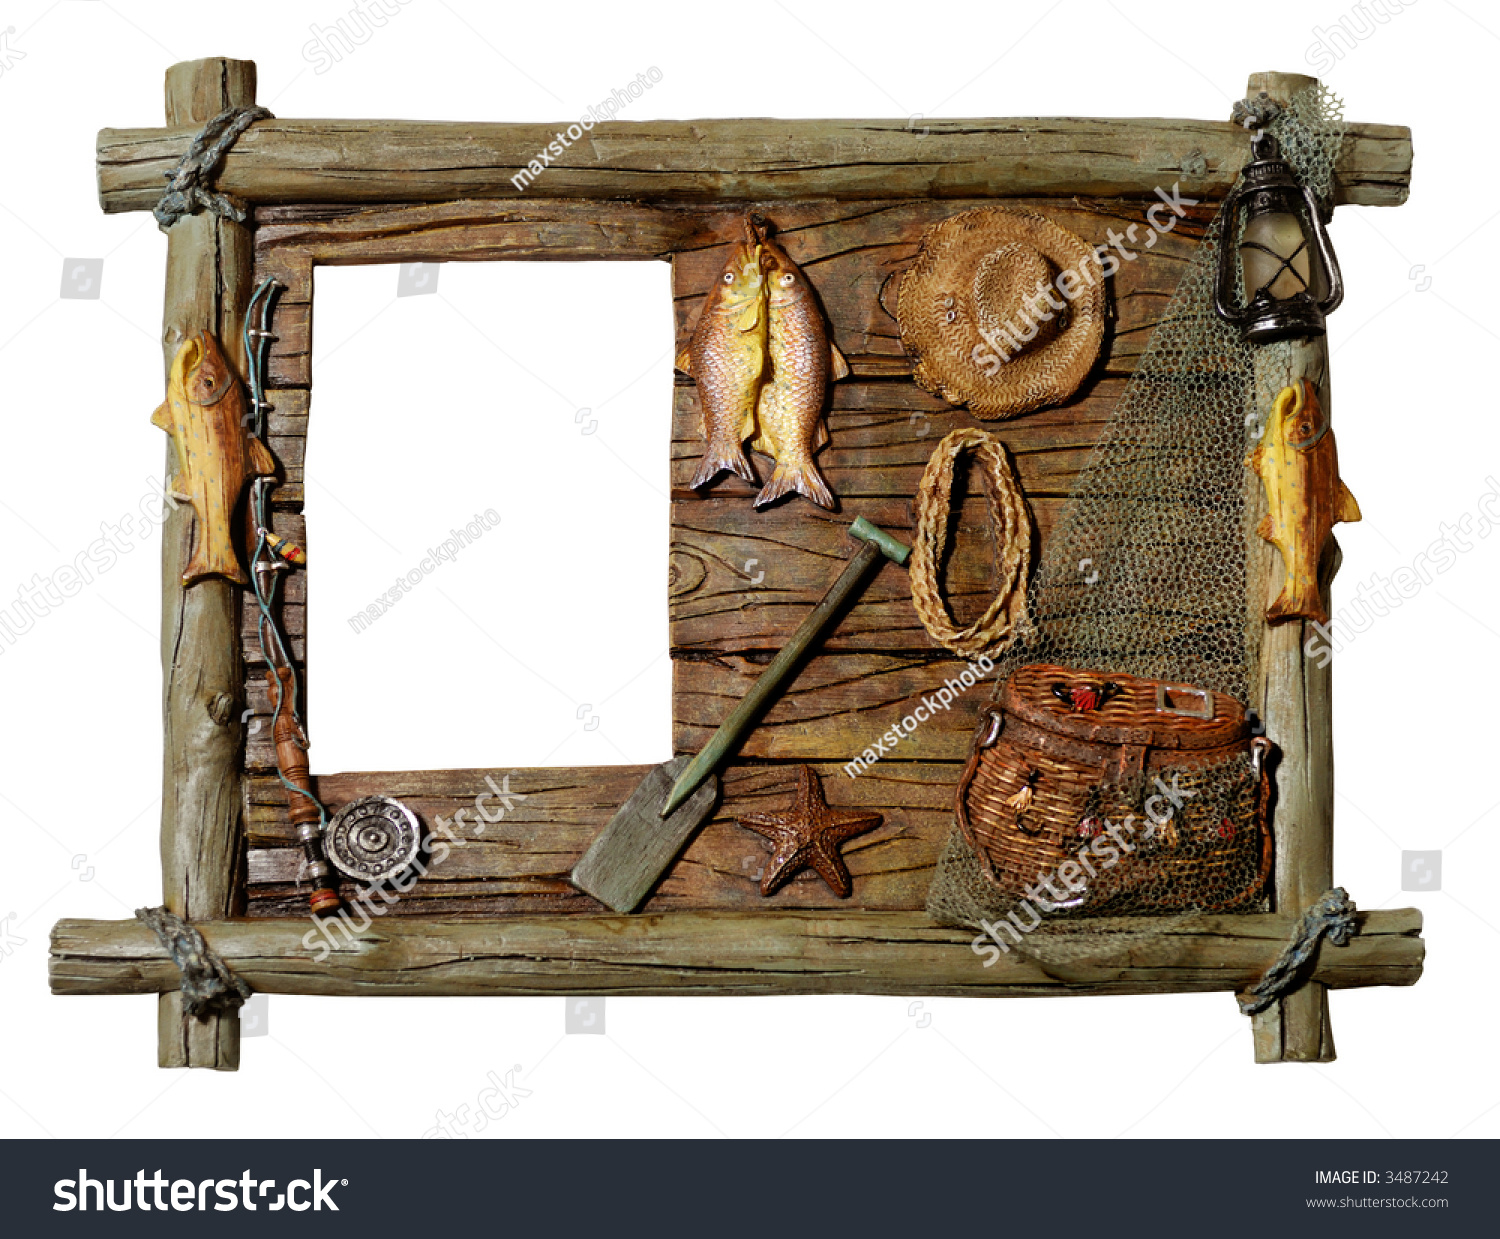 Decorative artistic wooden picture frame fishing theme for Fishing picture frame